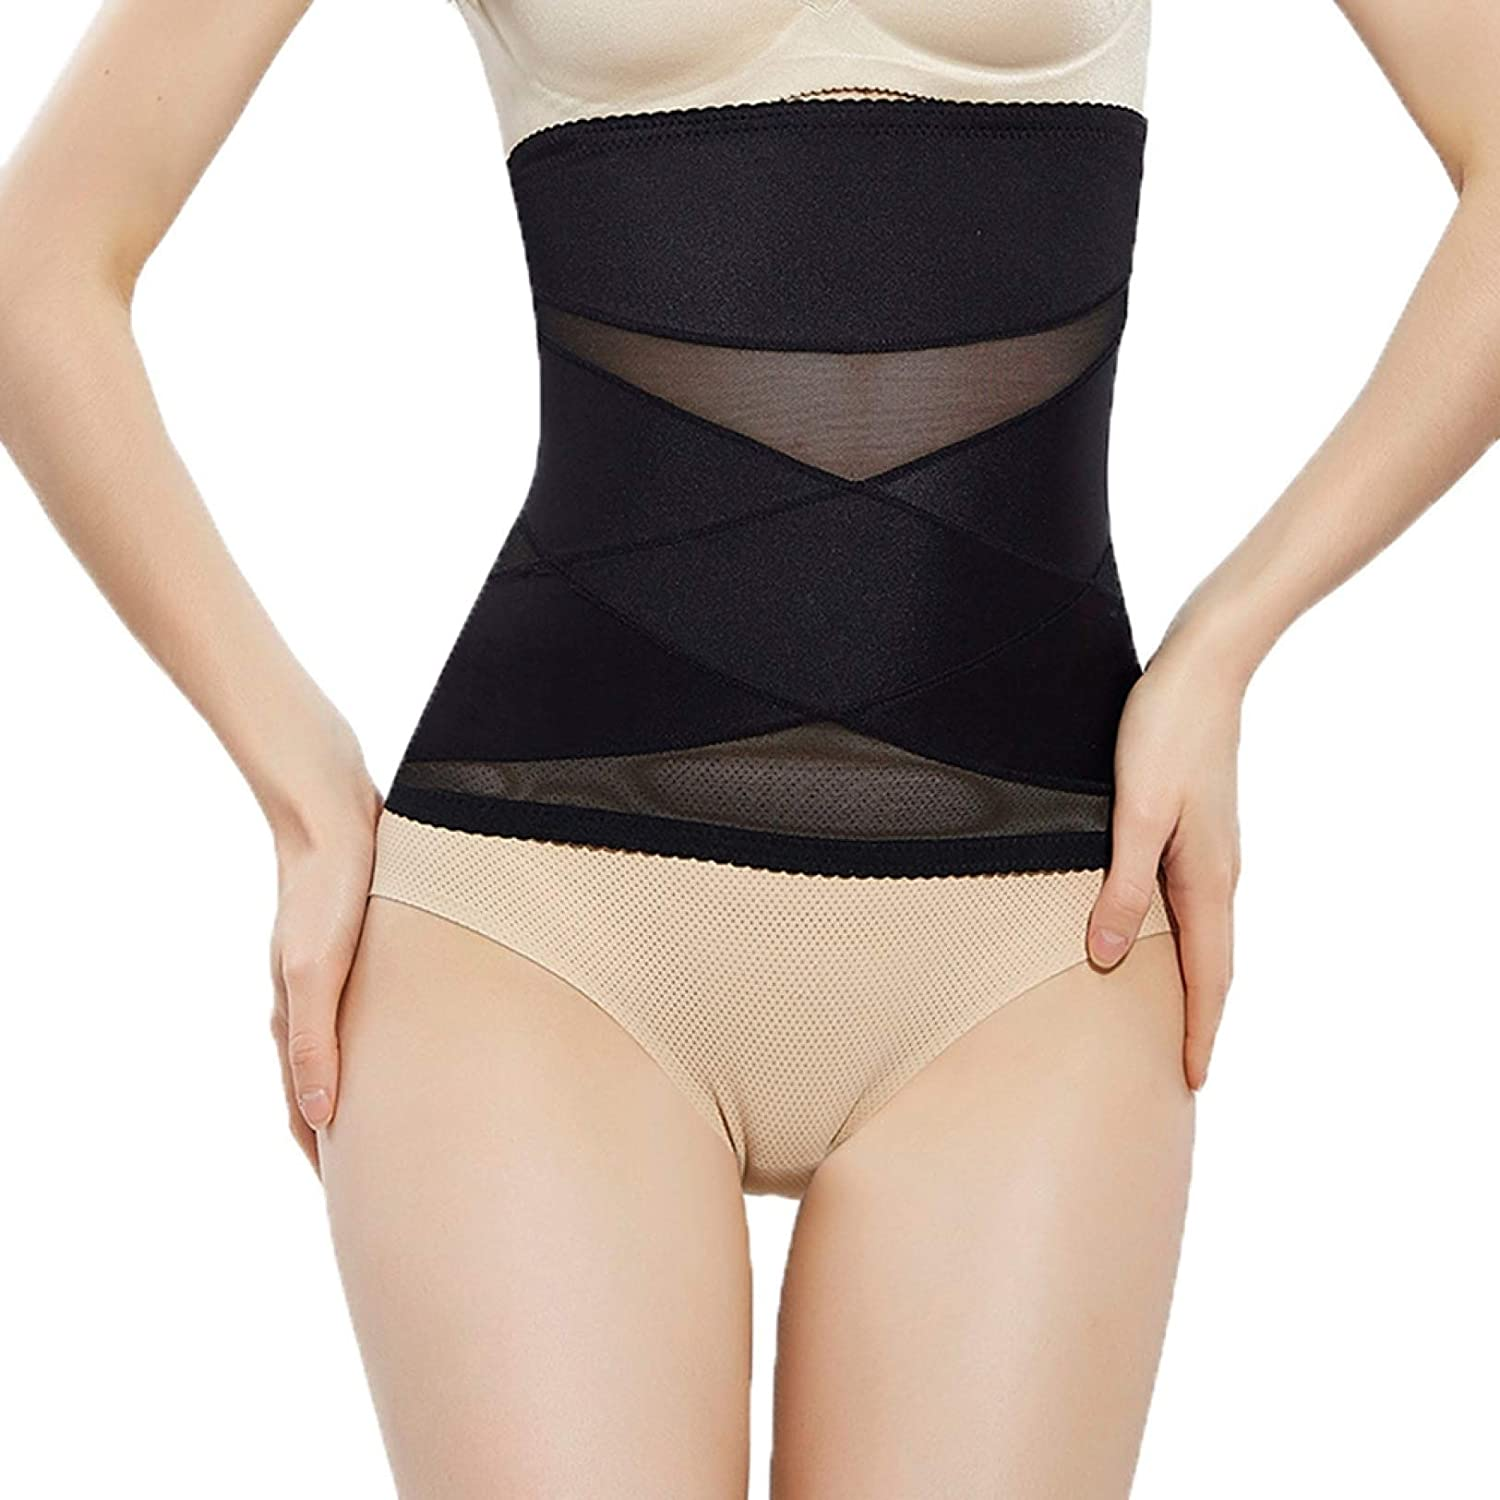 Woman Shapewear Cincher Limited price sale Stretchy Ranking TOP8 Band Flexible Belly Hourglass